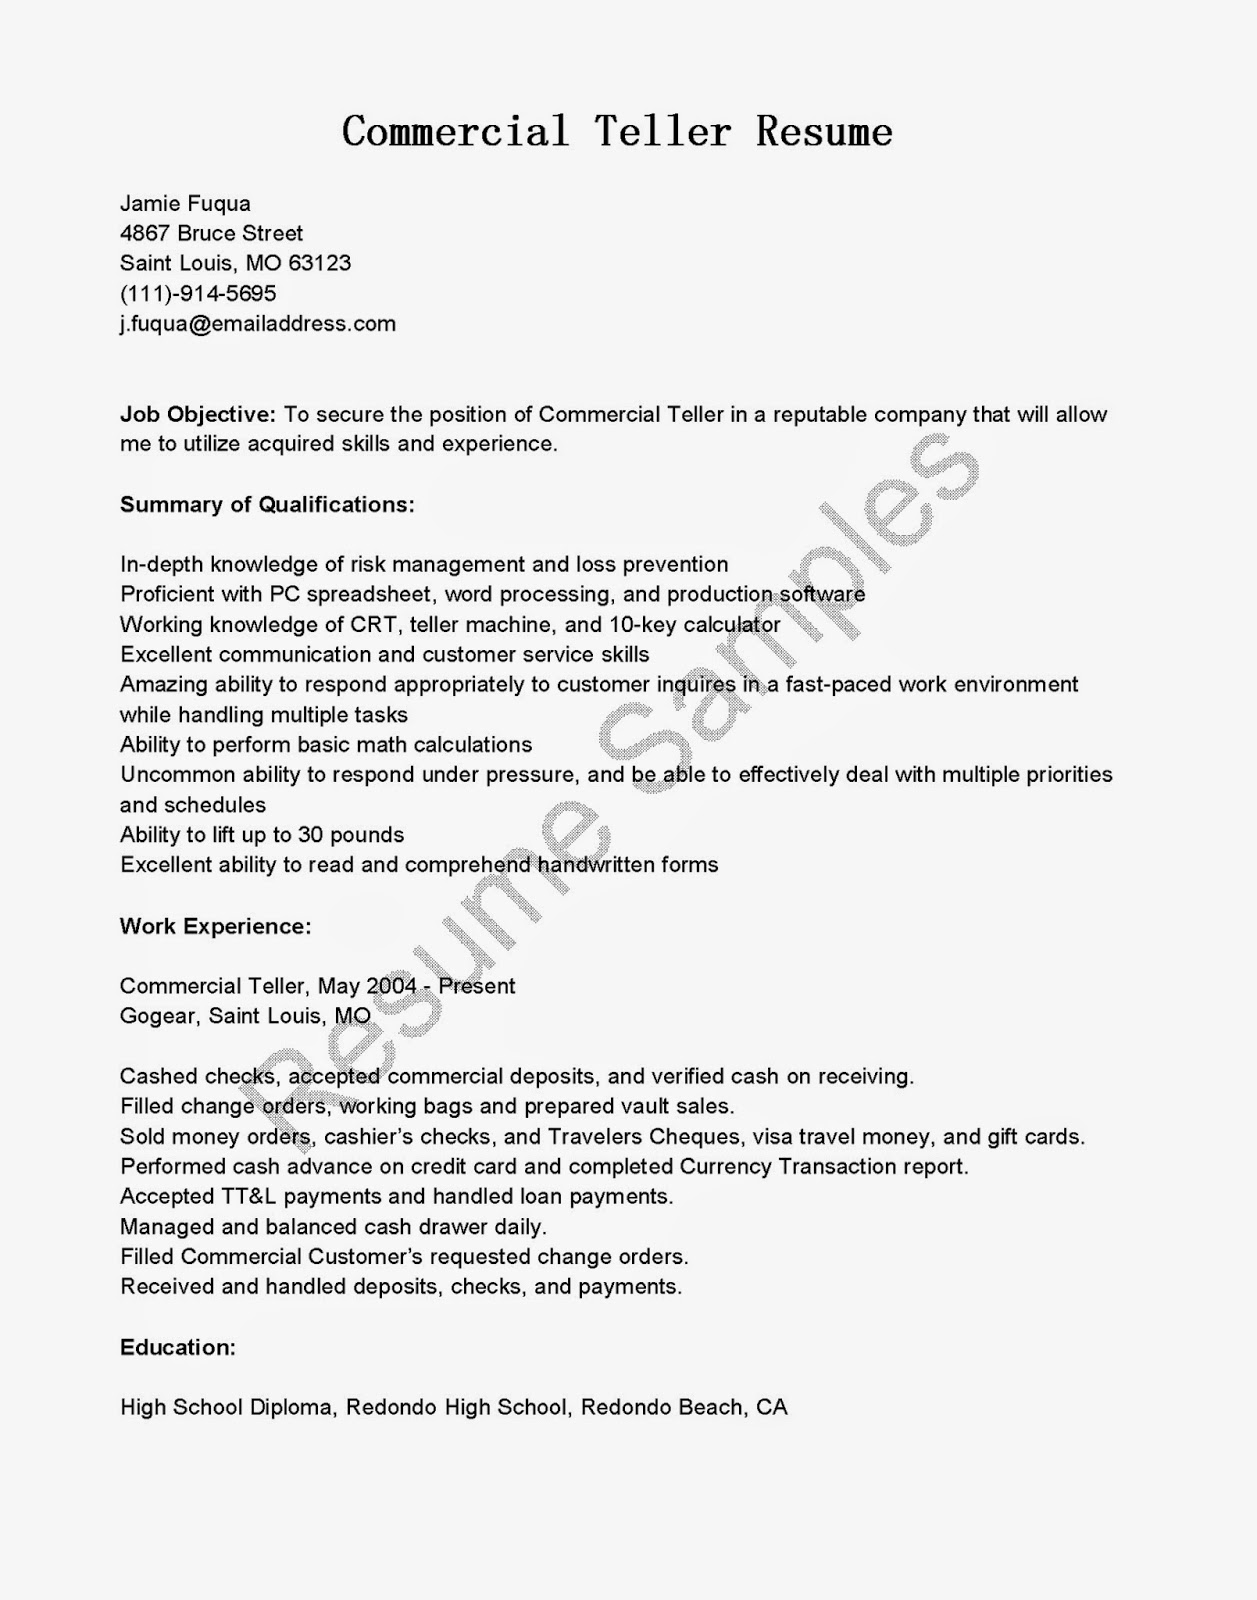 resume samples commercial teller resume sample